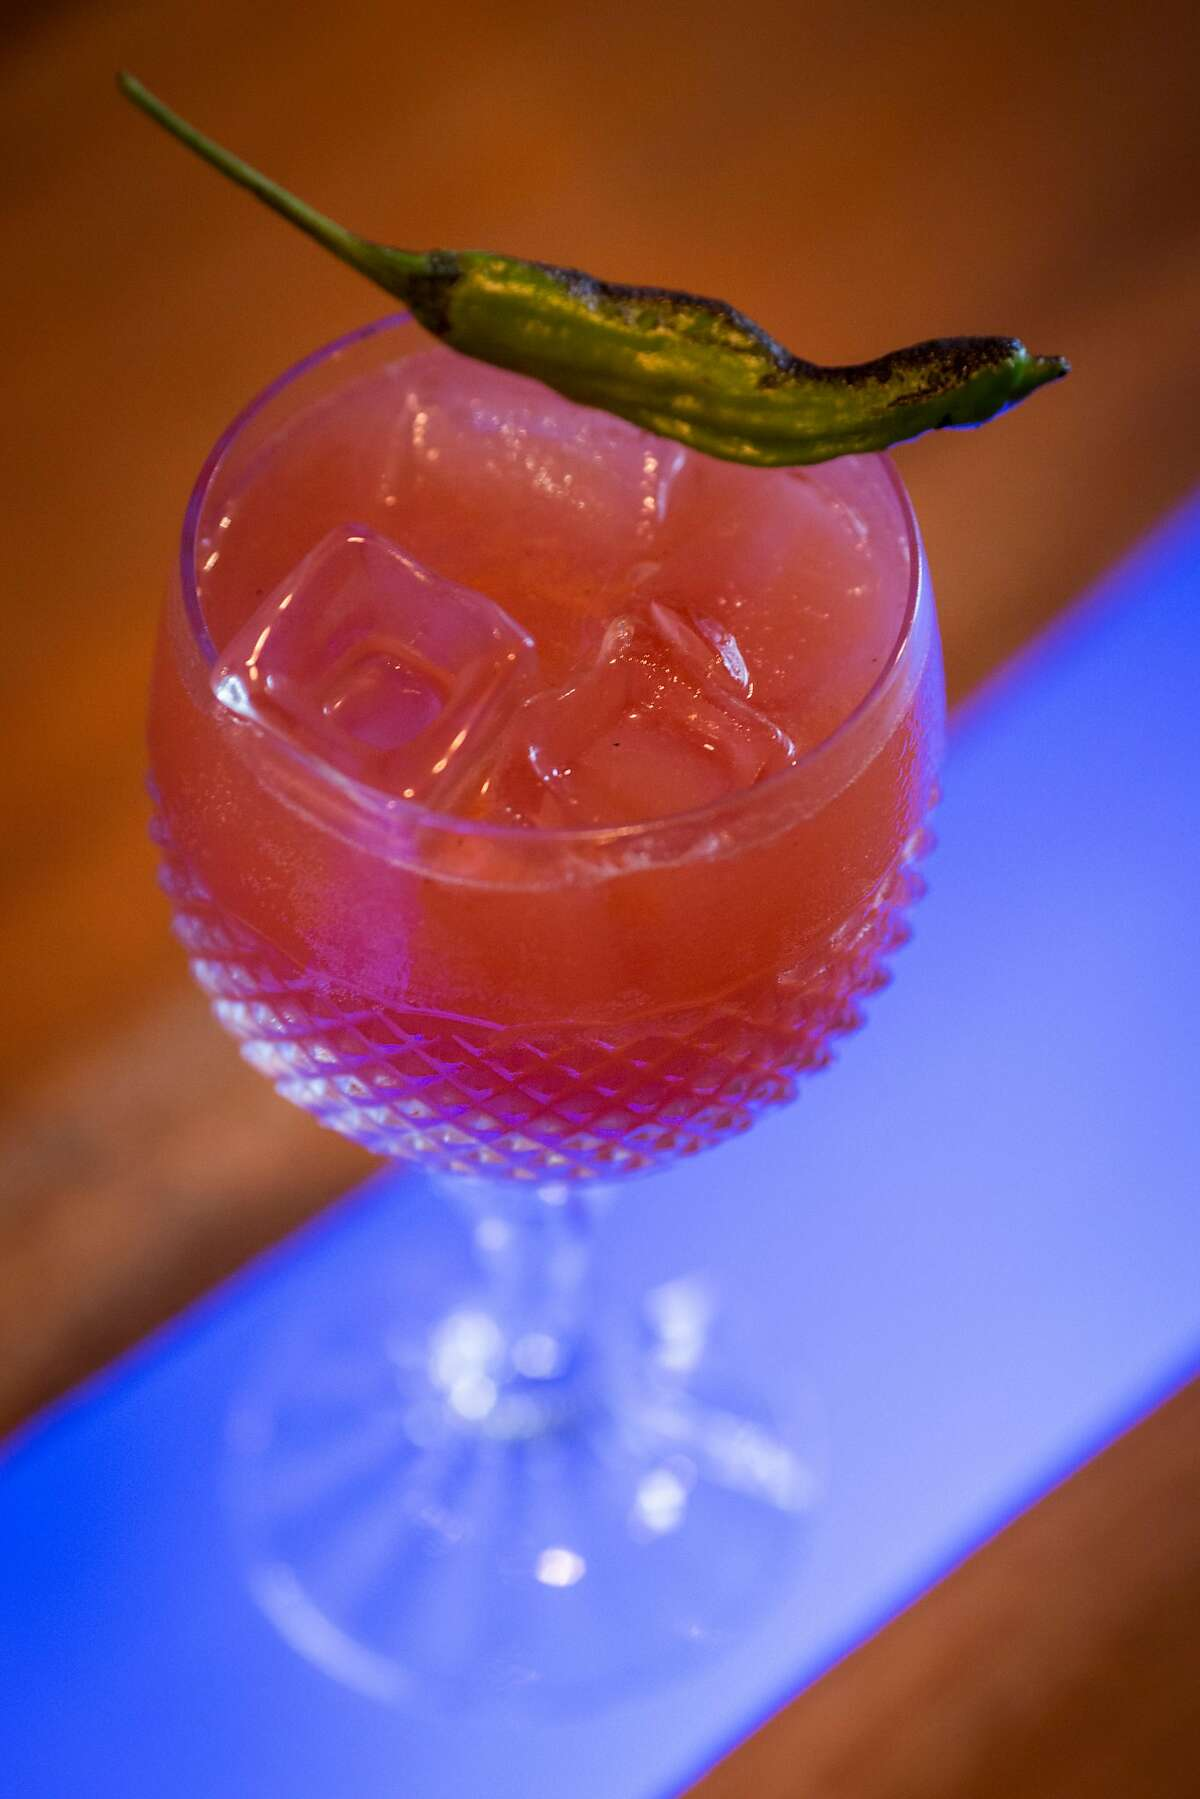 Copper Spoon co-owner/bartender Vita Simone demonstrating how to make the Loyalty cocktail, Wednesday 12 September 2018 in Oakland, CA. Loyalty - watermelon shrub, shishito honey syrup, fresh lime juice, 50mg Purium CBD oil soda water with a blistered shishito garnish.